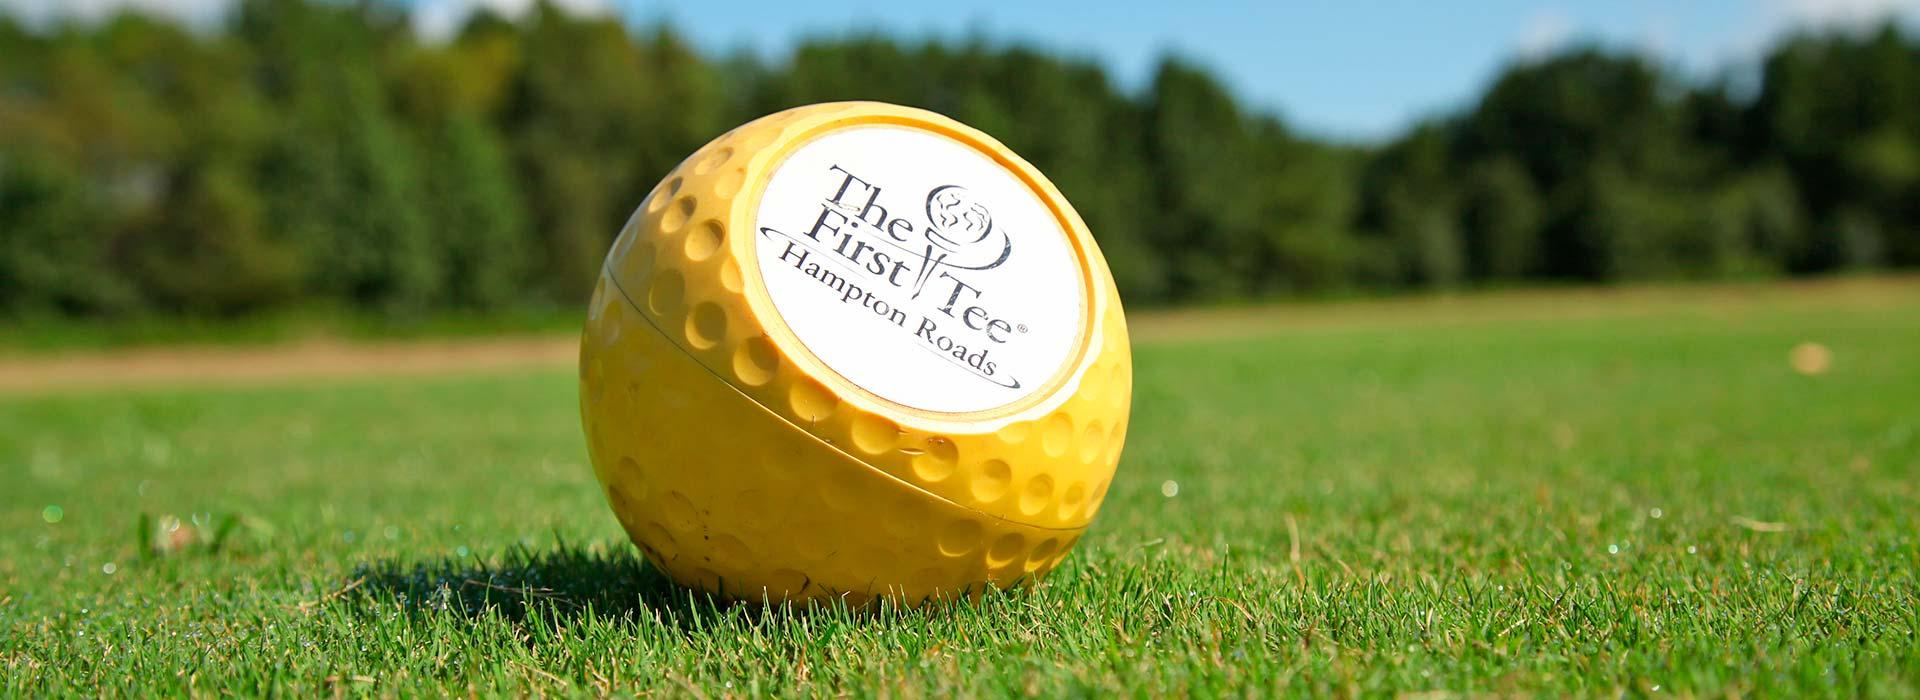 The First Tee of Hampton Roads